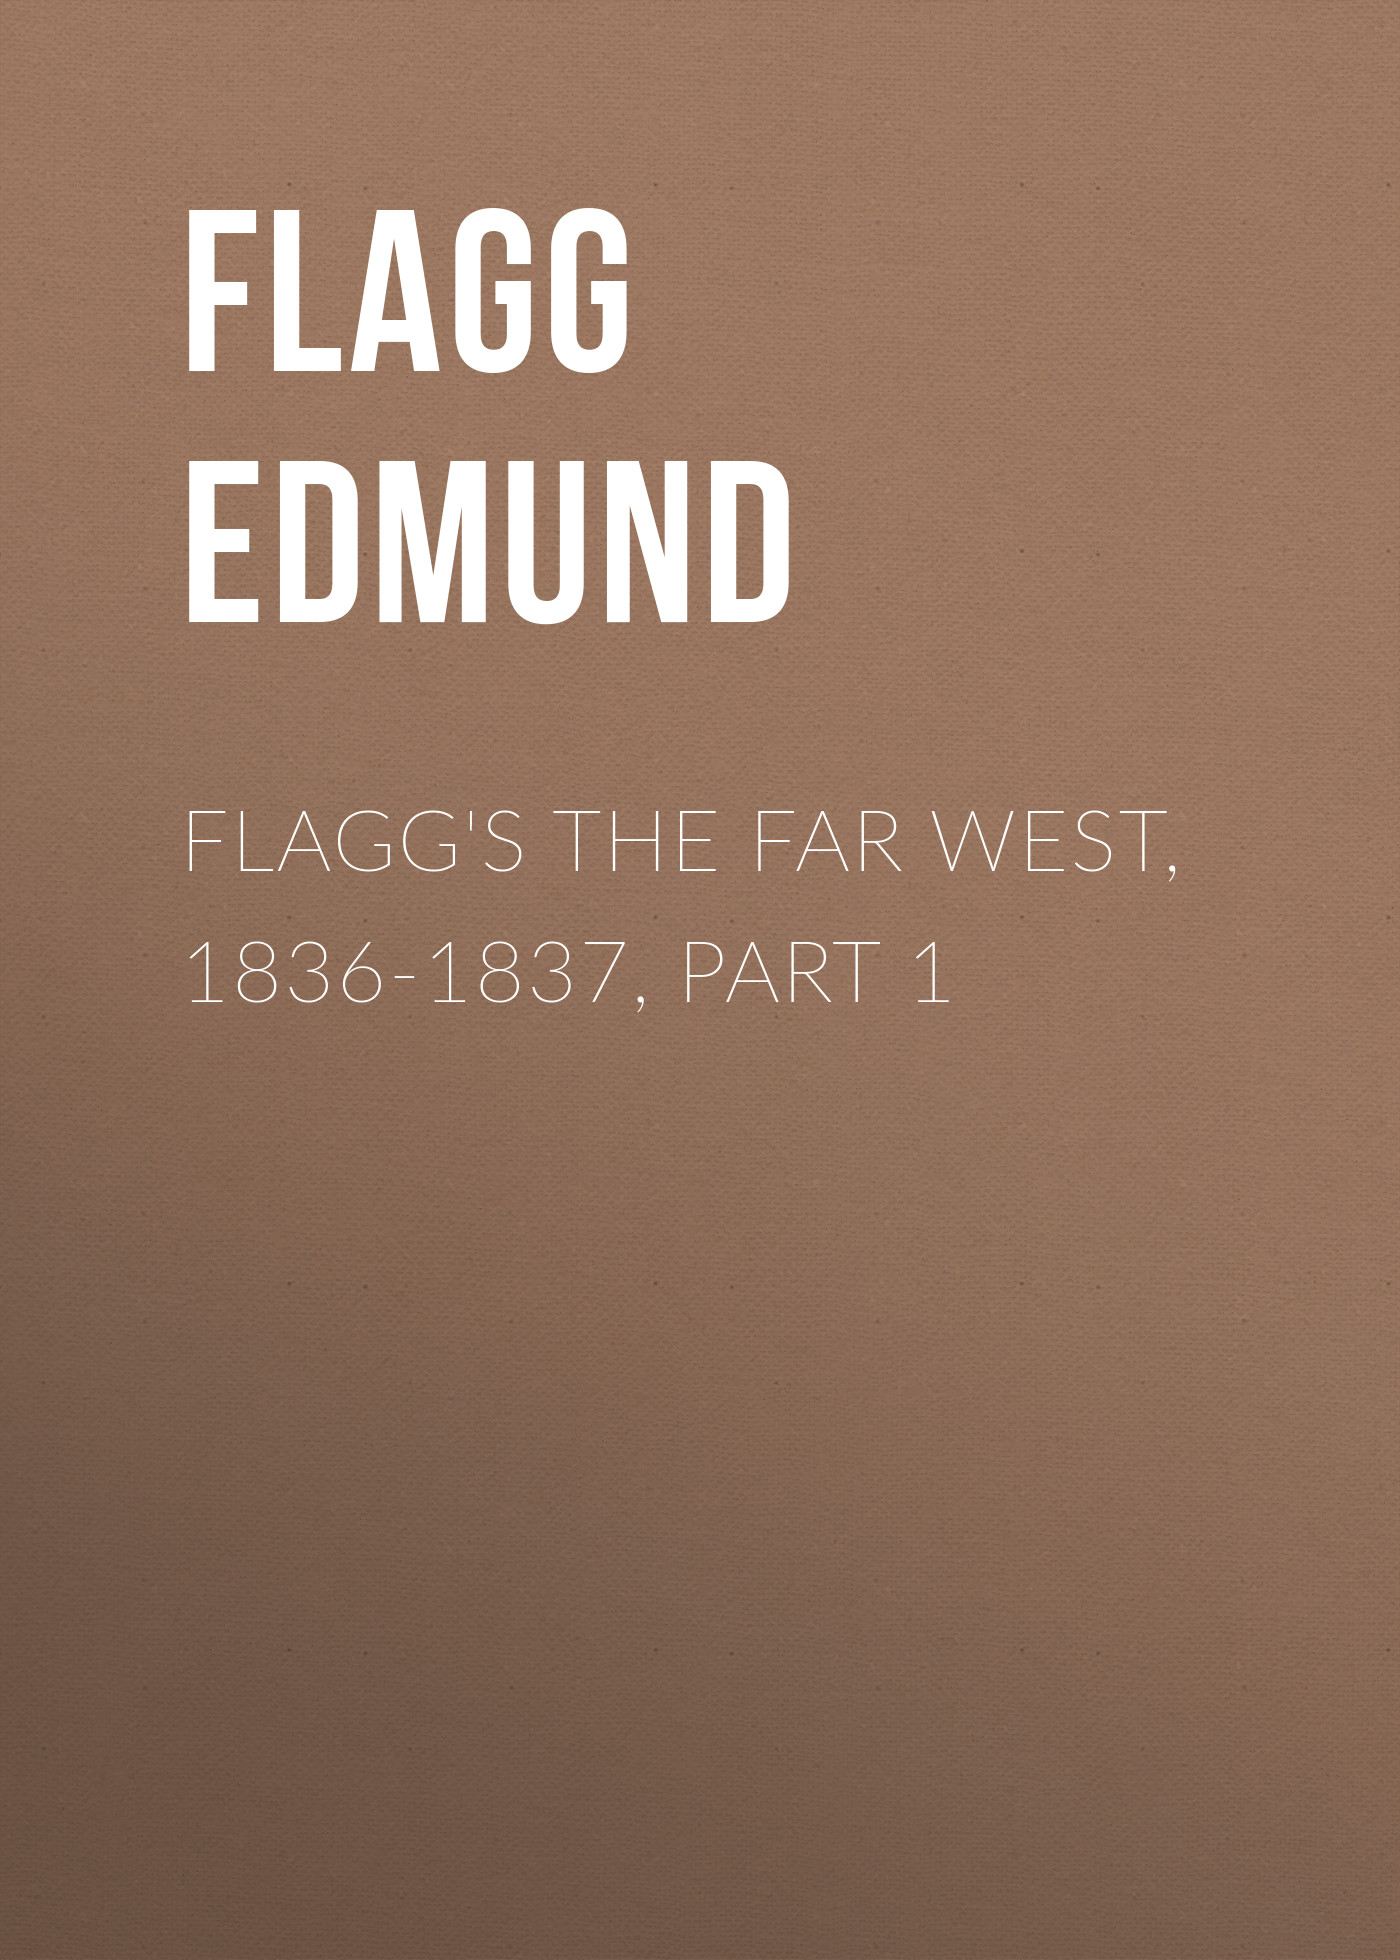 цена Flagg Edmund Flagg's The Far West, 1836-1837, part 1